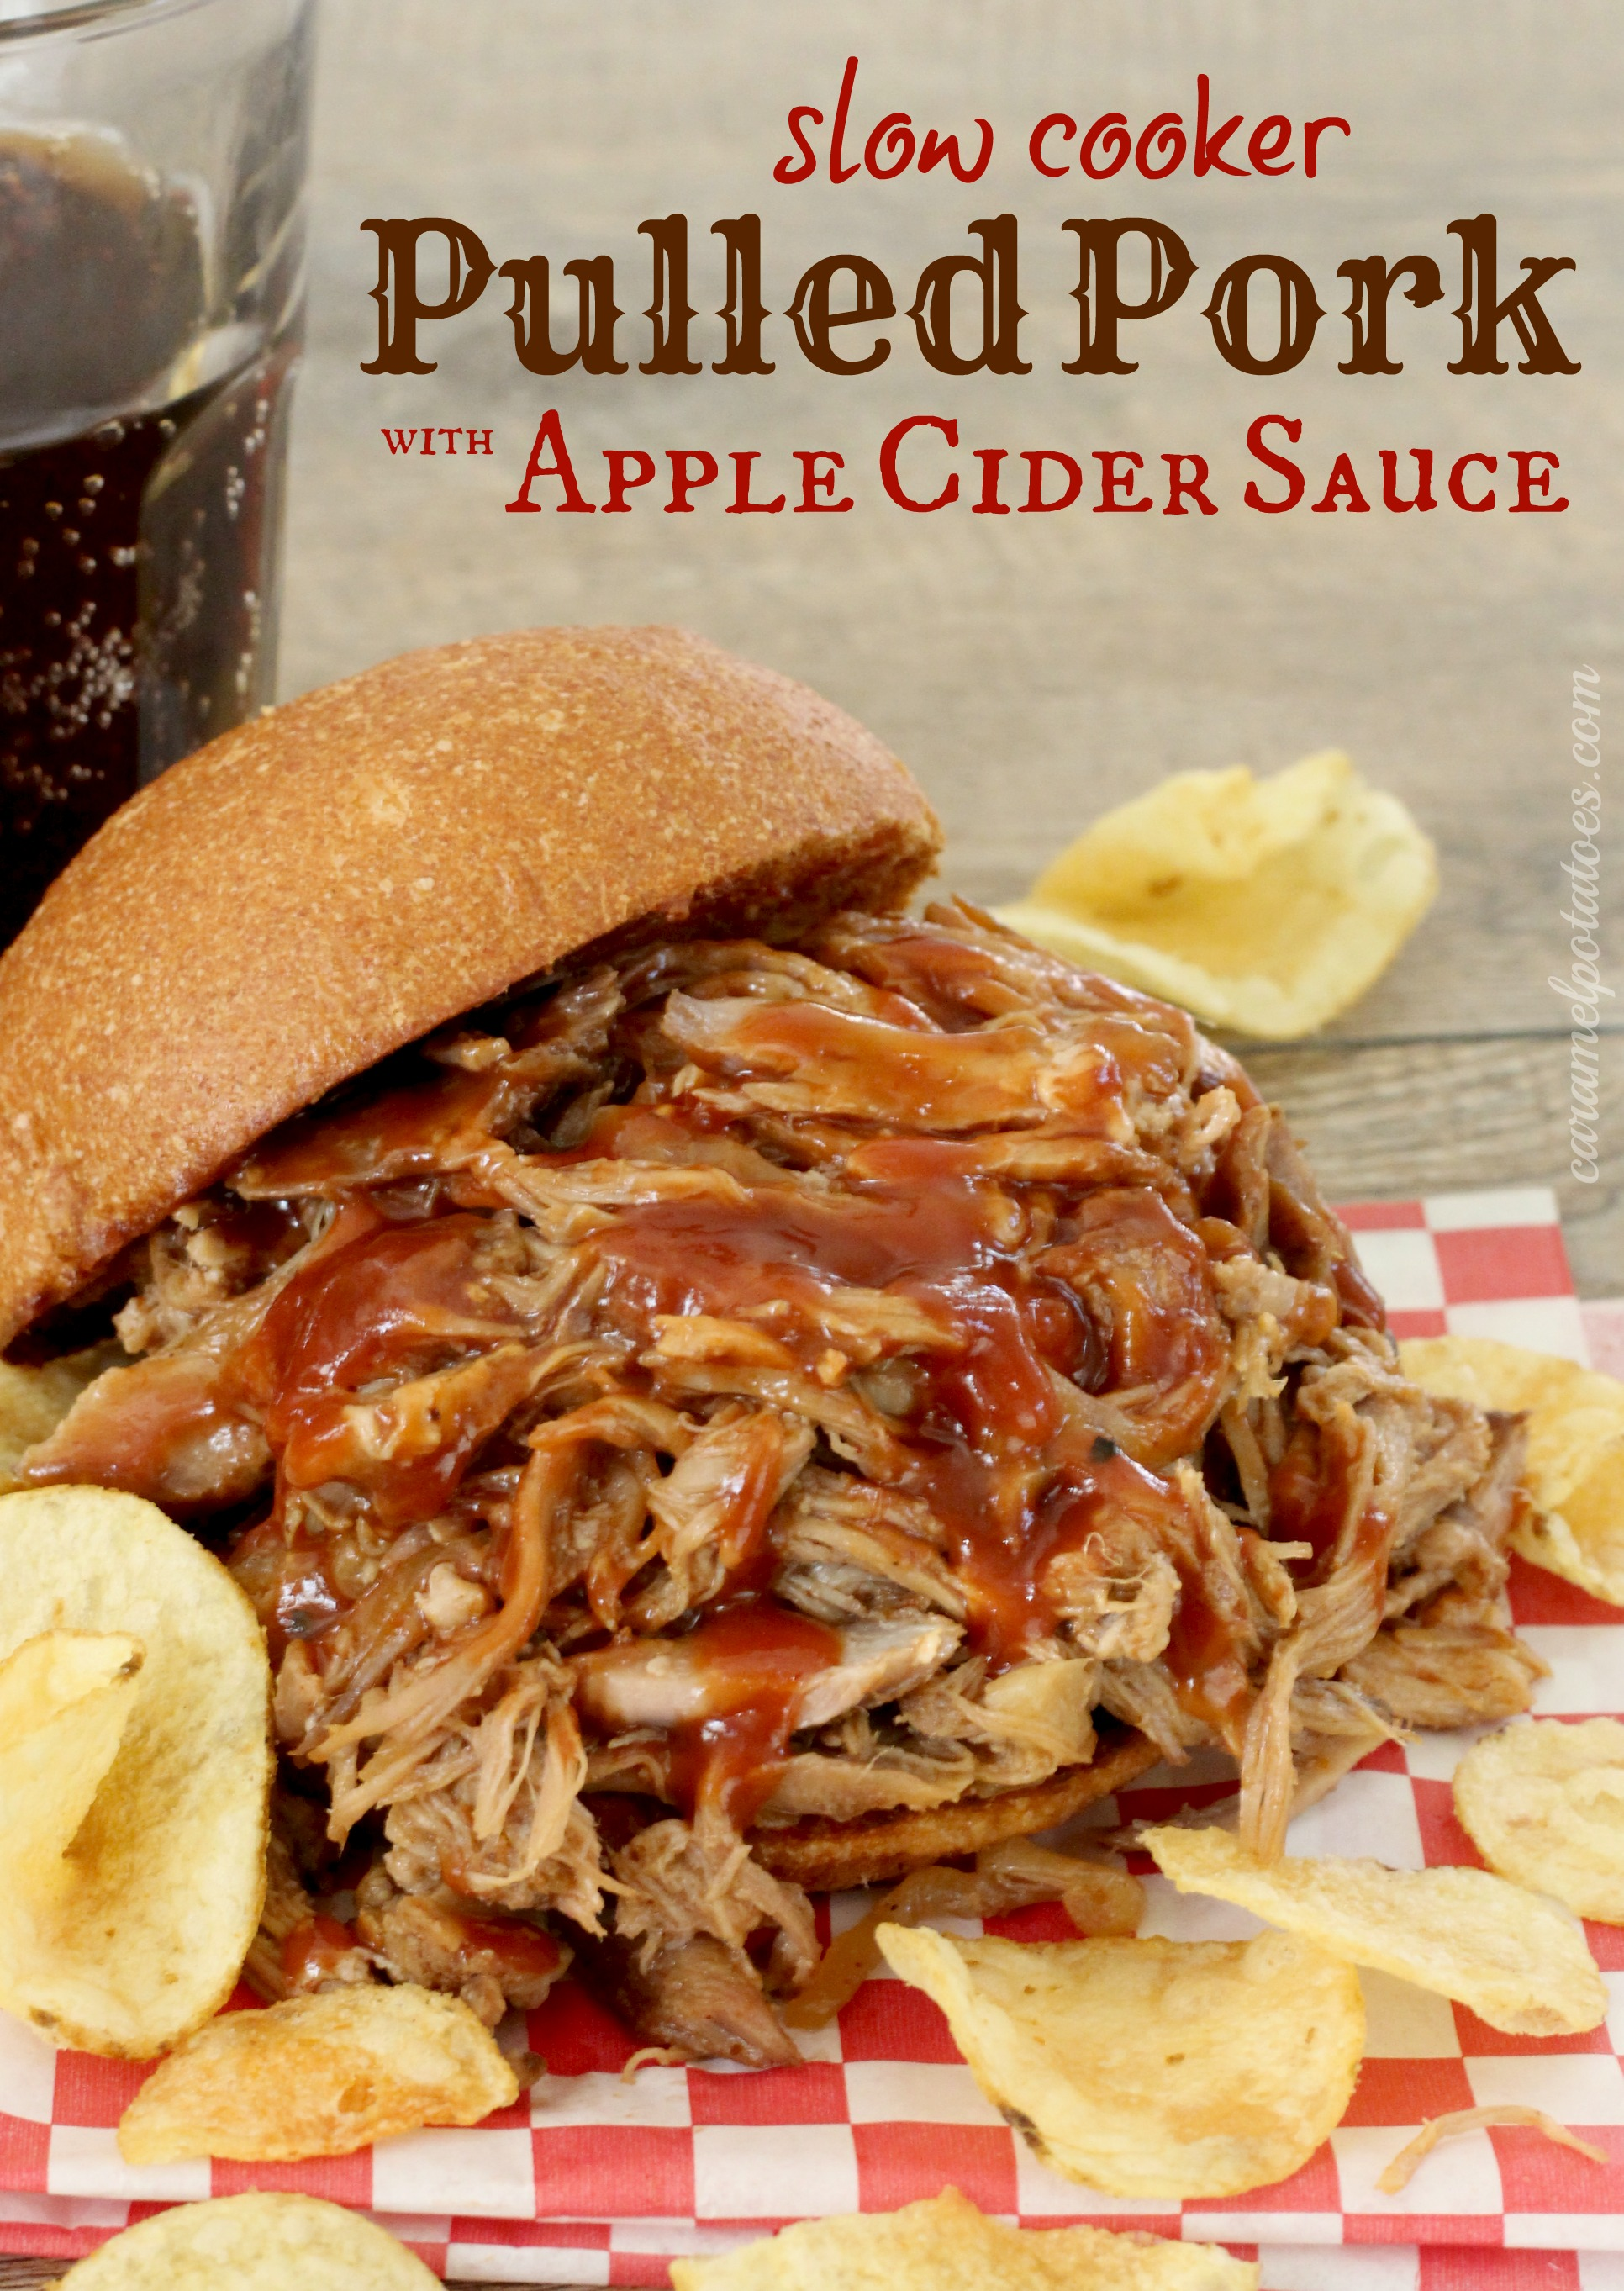 ... Potatoes » Pulled Pork with Apple Cider Sauce {slow cooker recipe